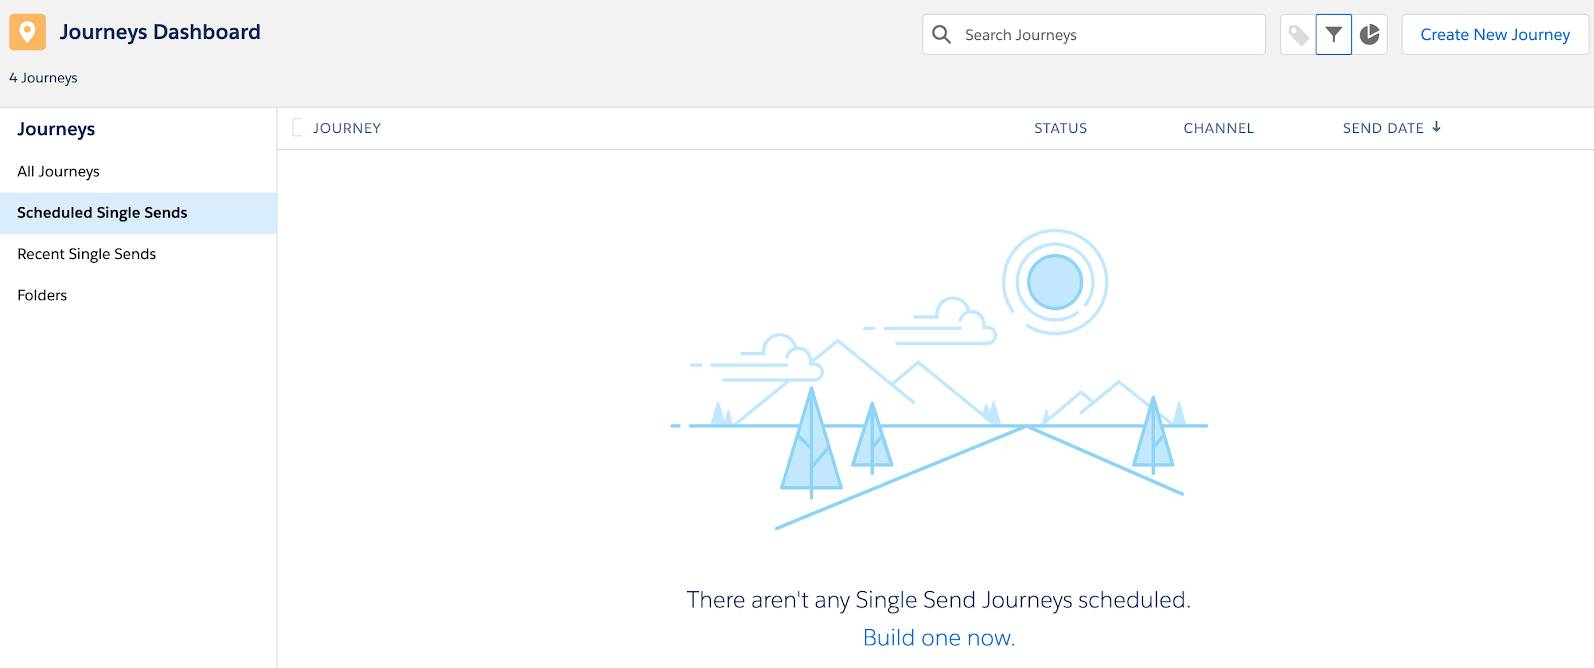 Blank Journey Dashboard for Single Send Journey